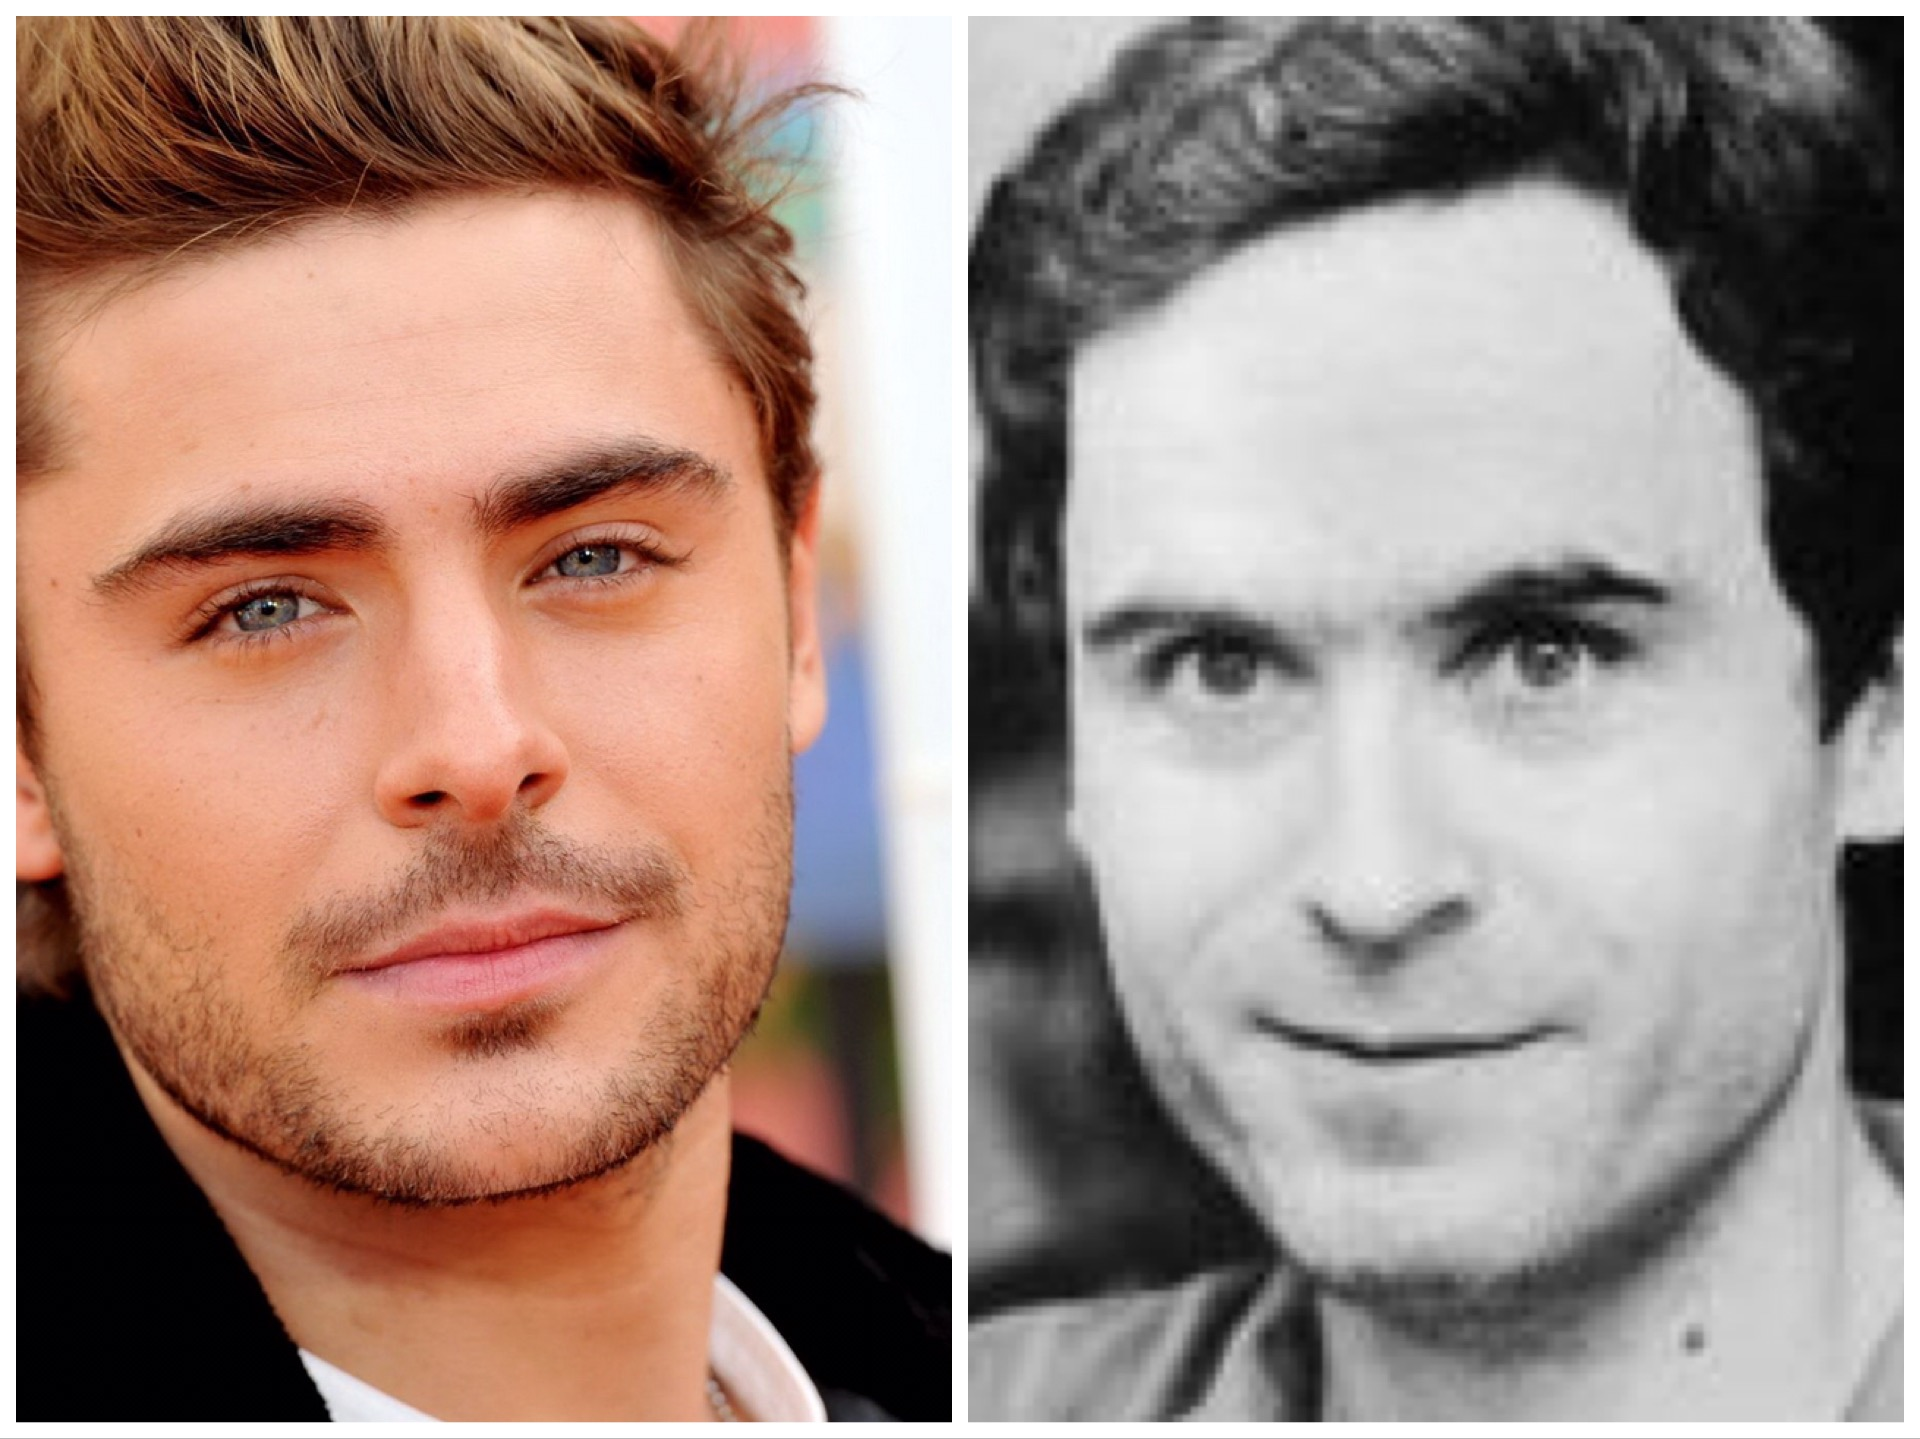 ted bundy the horror the lurks in the shadows In the upcoming film, reports thr, efron will be playing ted bundy, one of the world's most notorious serial killers bundy claimed 30+ victims throughout the 1970s bundy claimed 30+ victims .